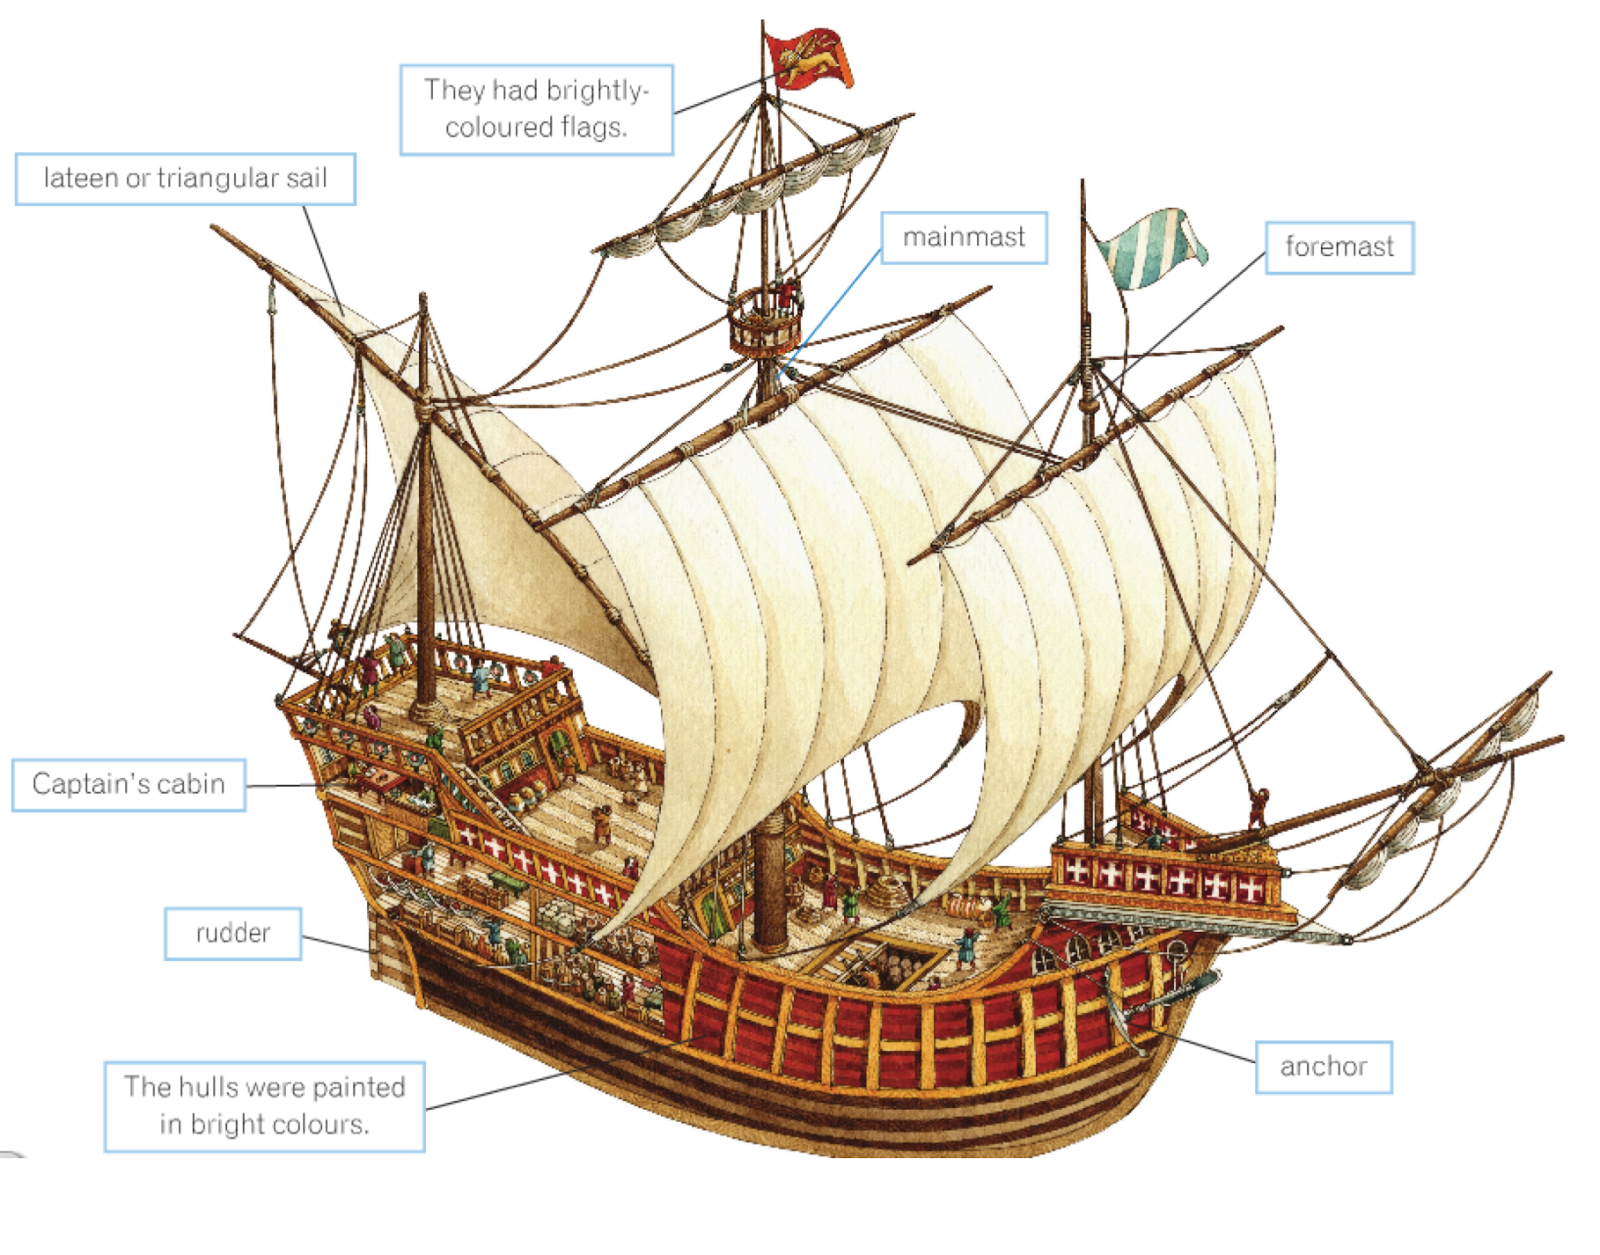 Parts Of A Pirate Ship Diagram 4 Way Solenoid Valve Mr Bell 39s World History Enero 2014